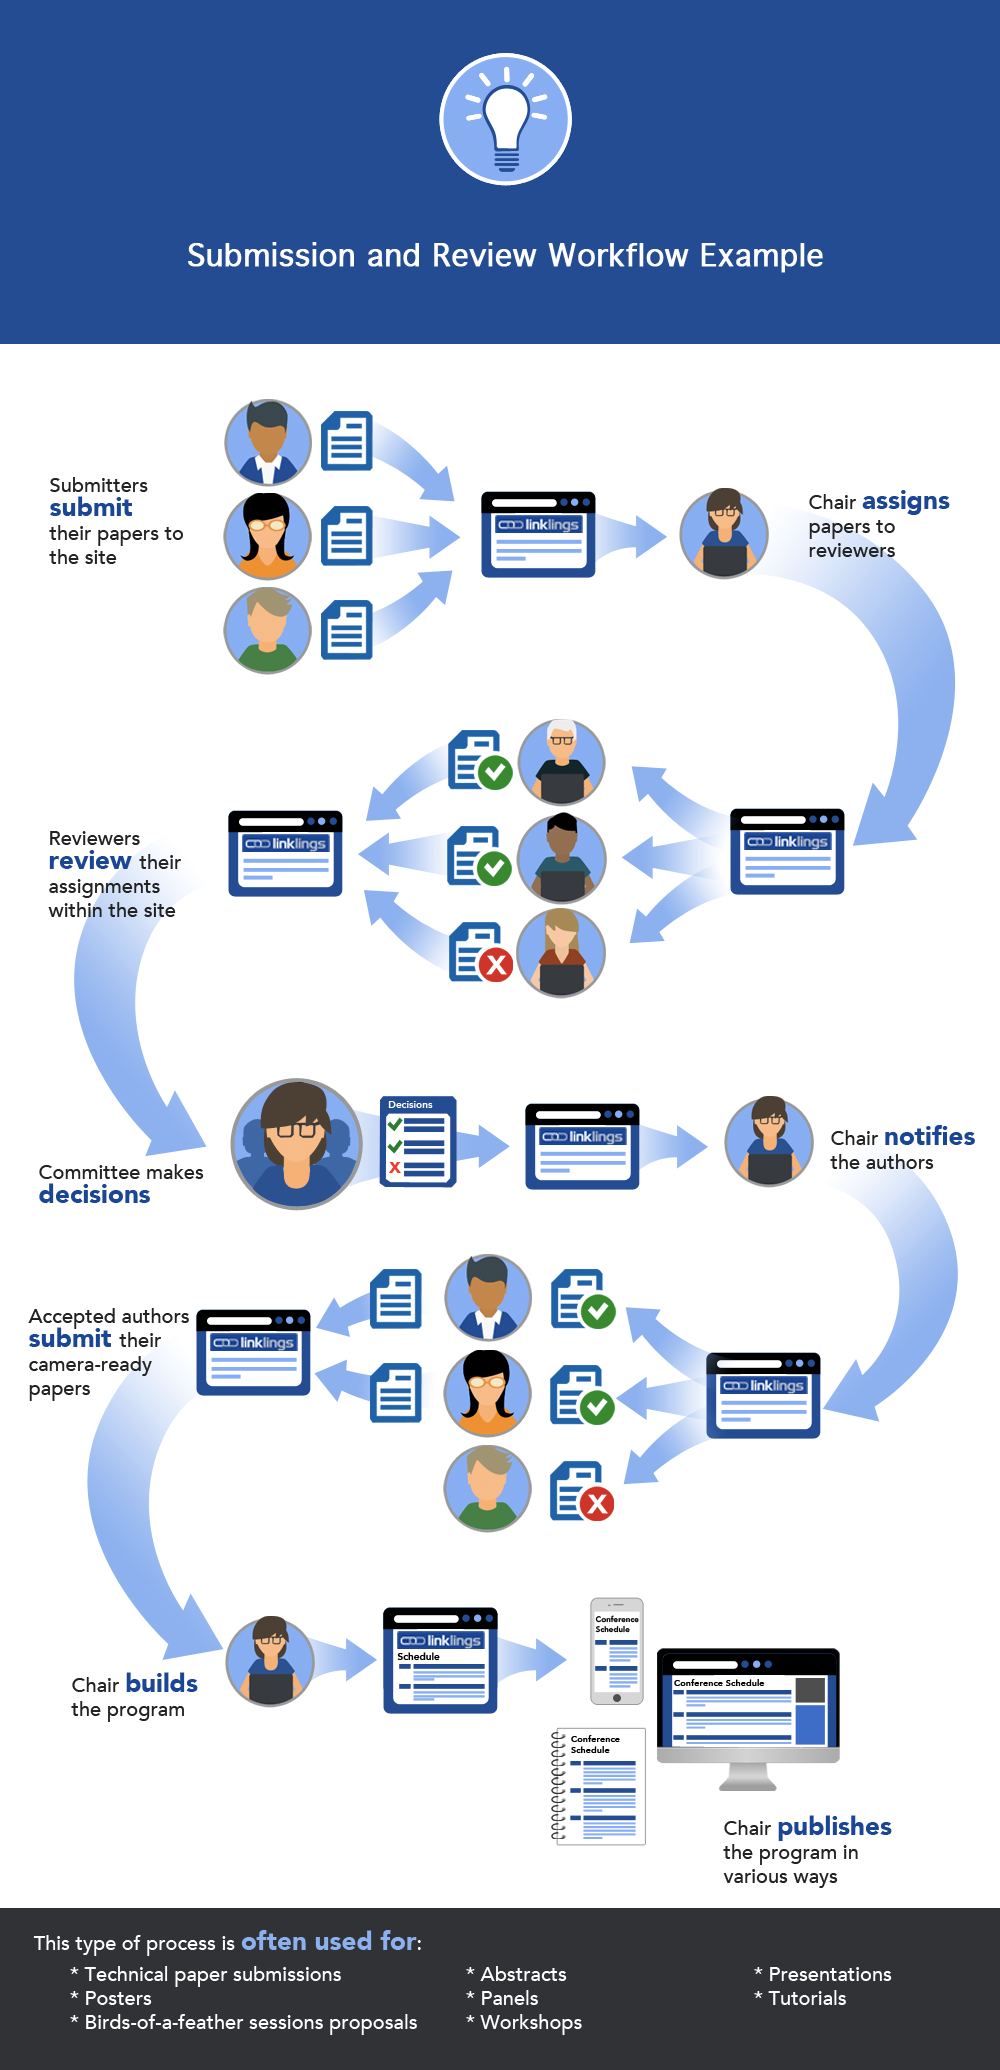 Submission and Review Workflow Example